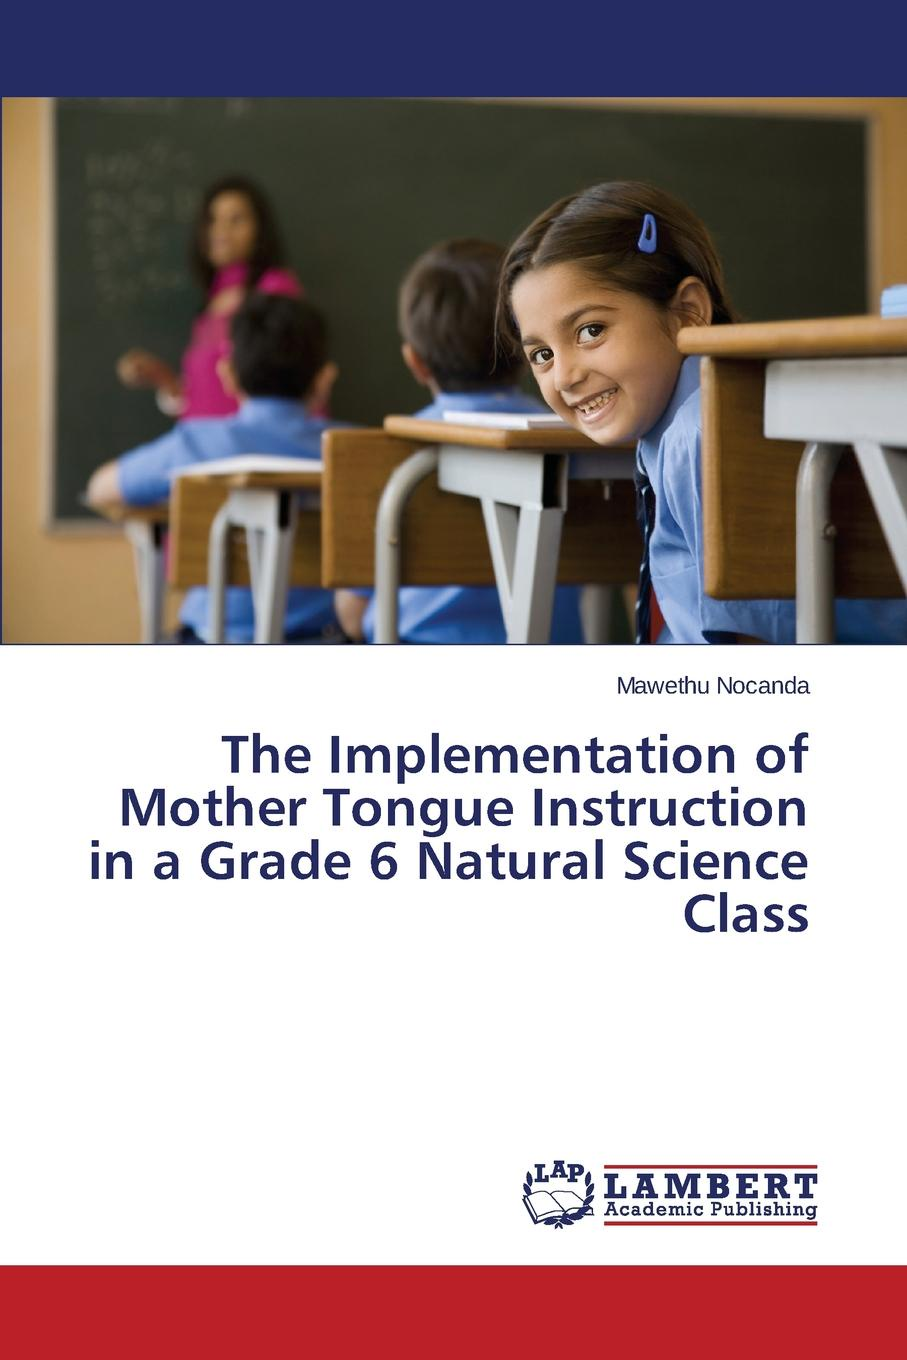 Nocanda Mawethu The Implementation of Mother Tongue Instruction in a Grade 6 Natural Science Class nocanda mawethu the implementation of mother tongue instruction in a grade 6 natural science class